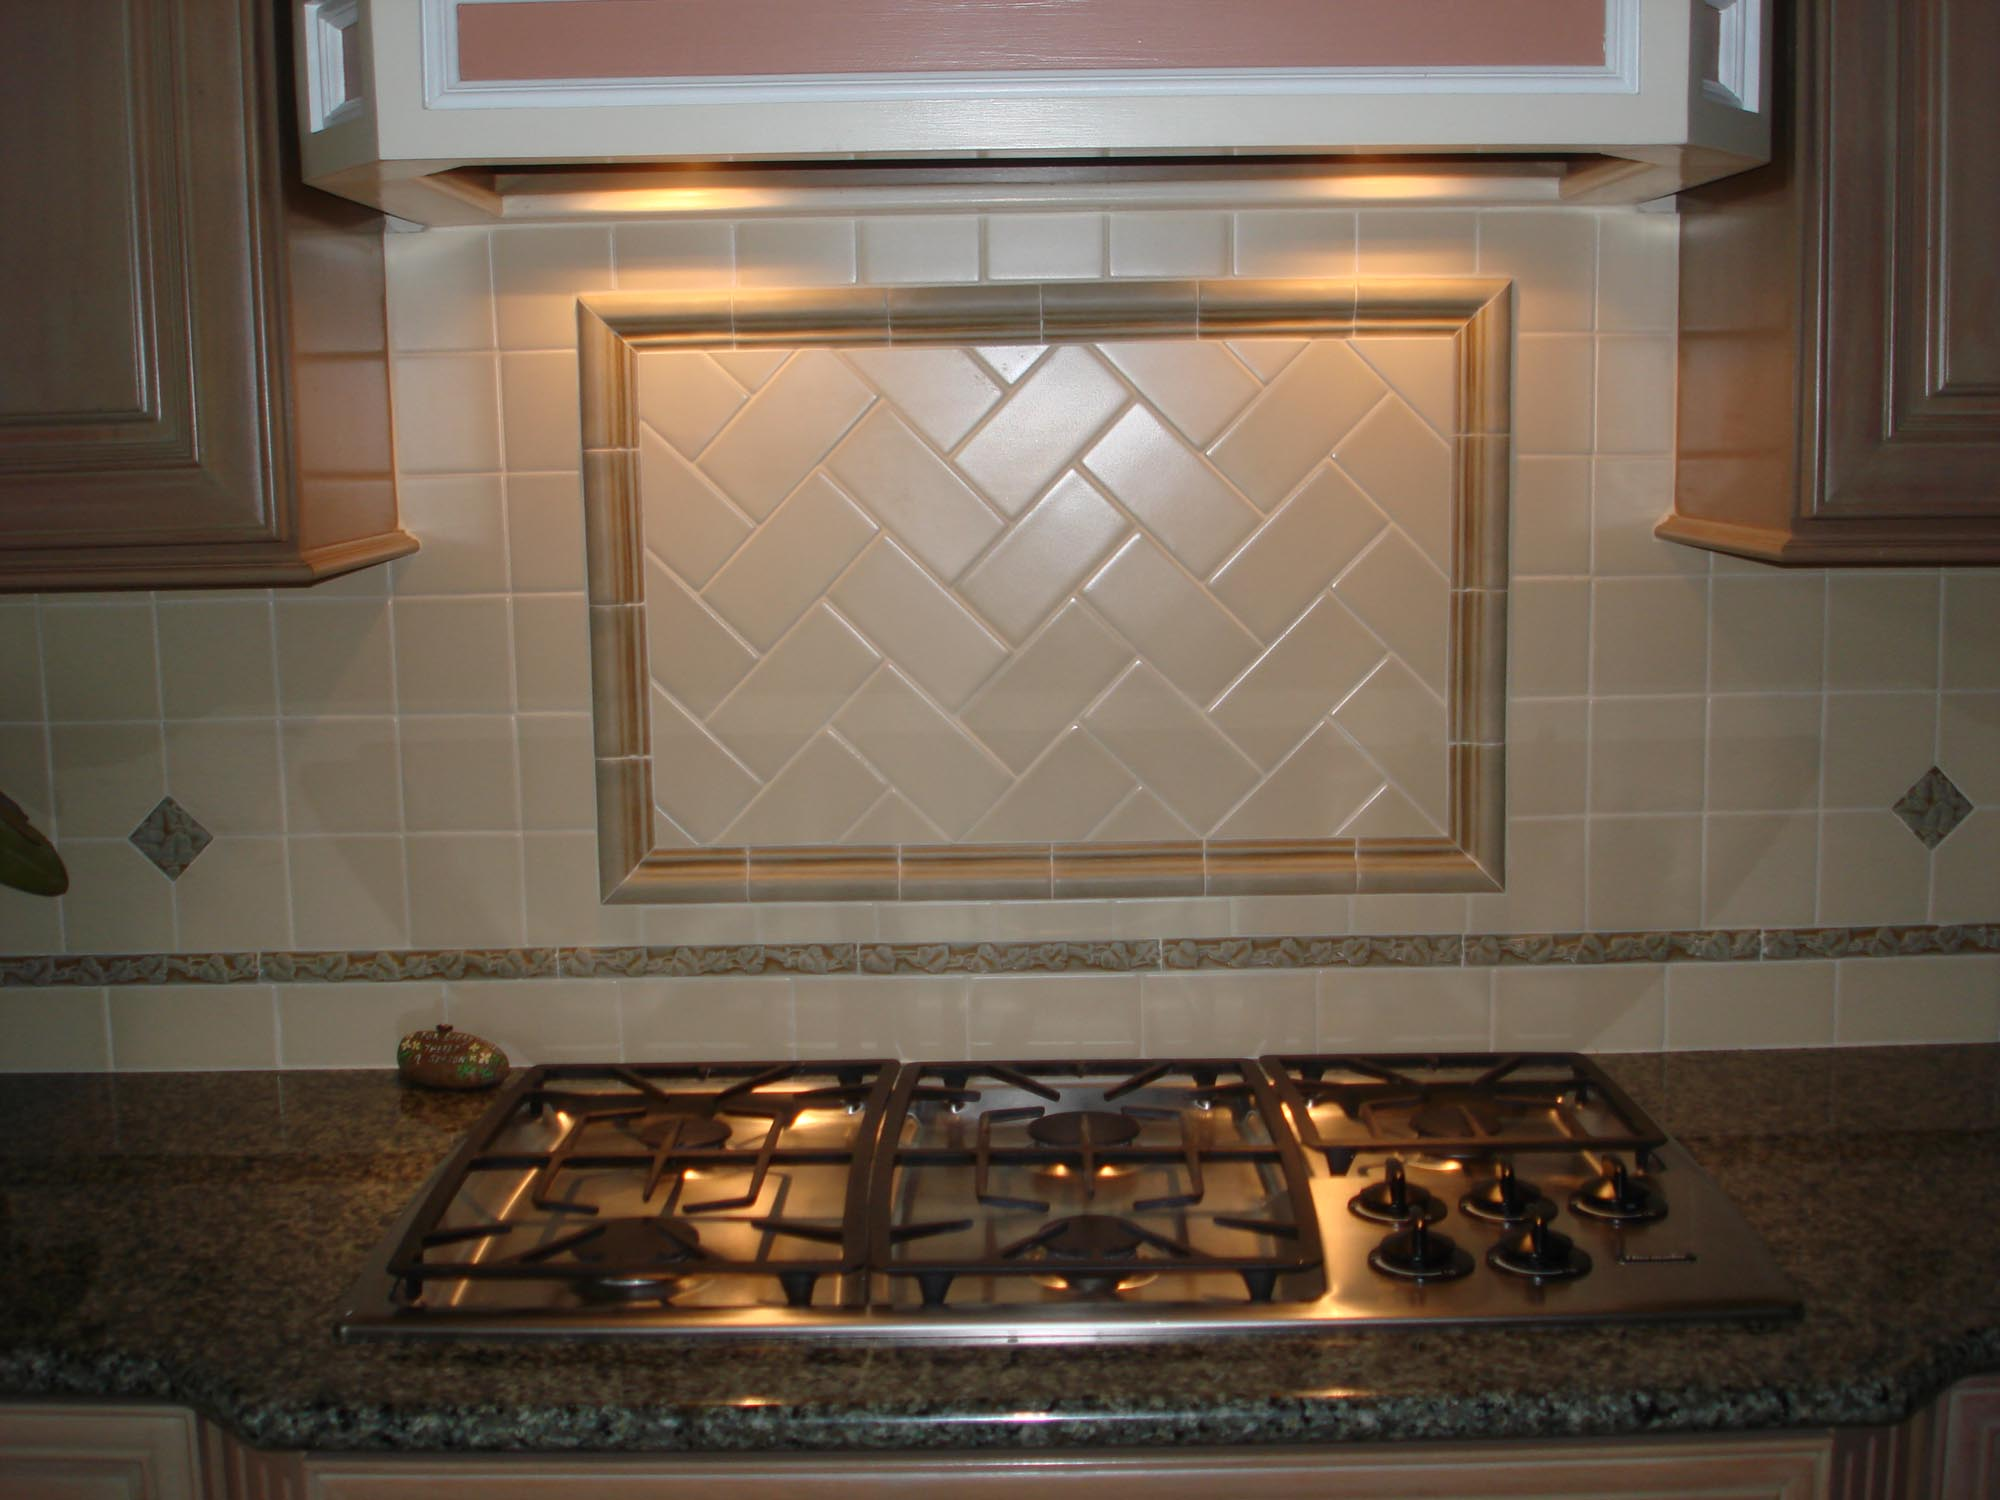 Handmade ceramic kitchen backsplash new jersey custom tile - Custom kitchen backsplash tiles ...